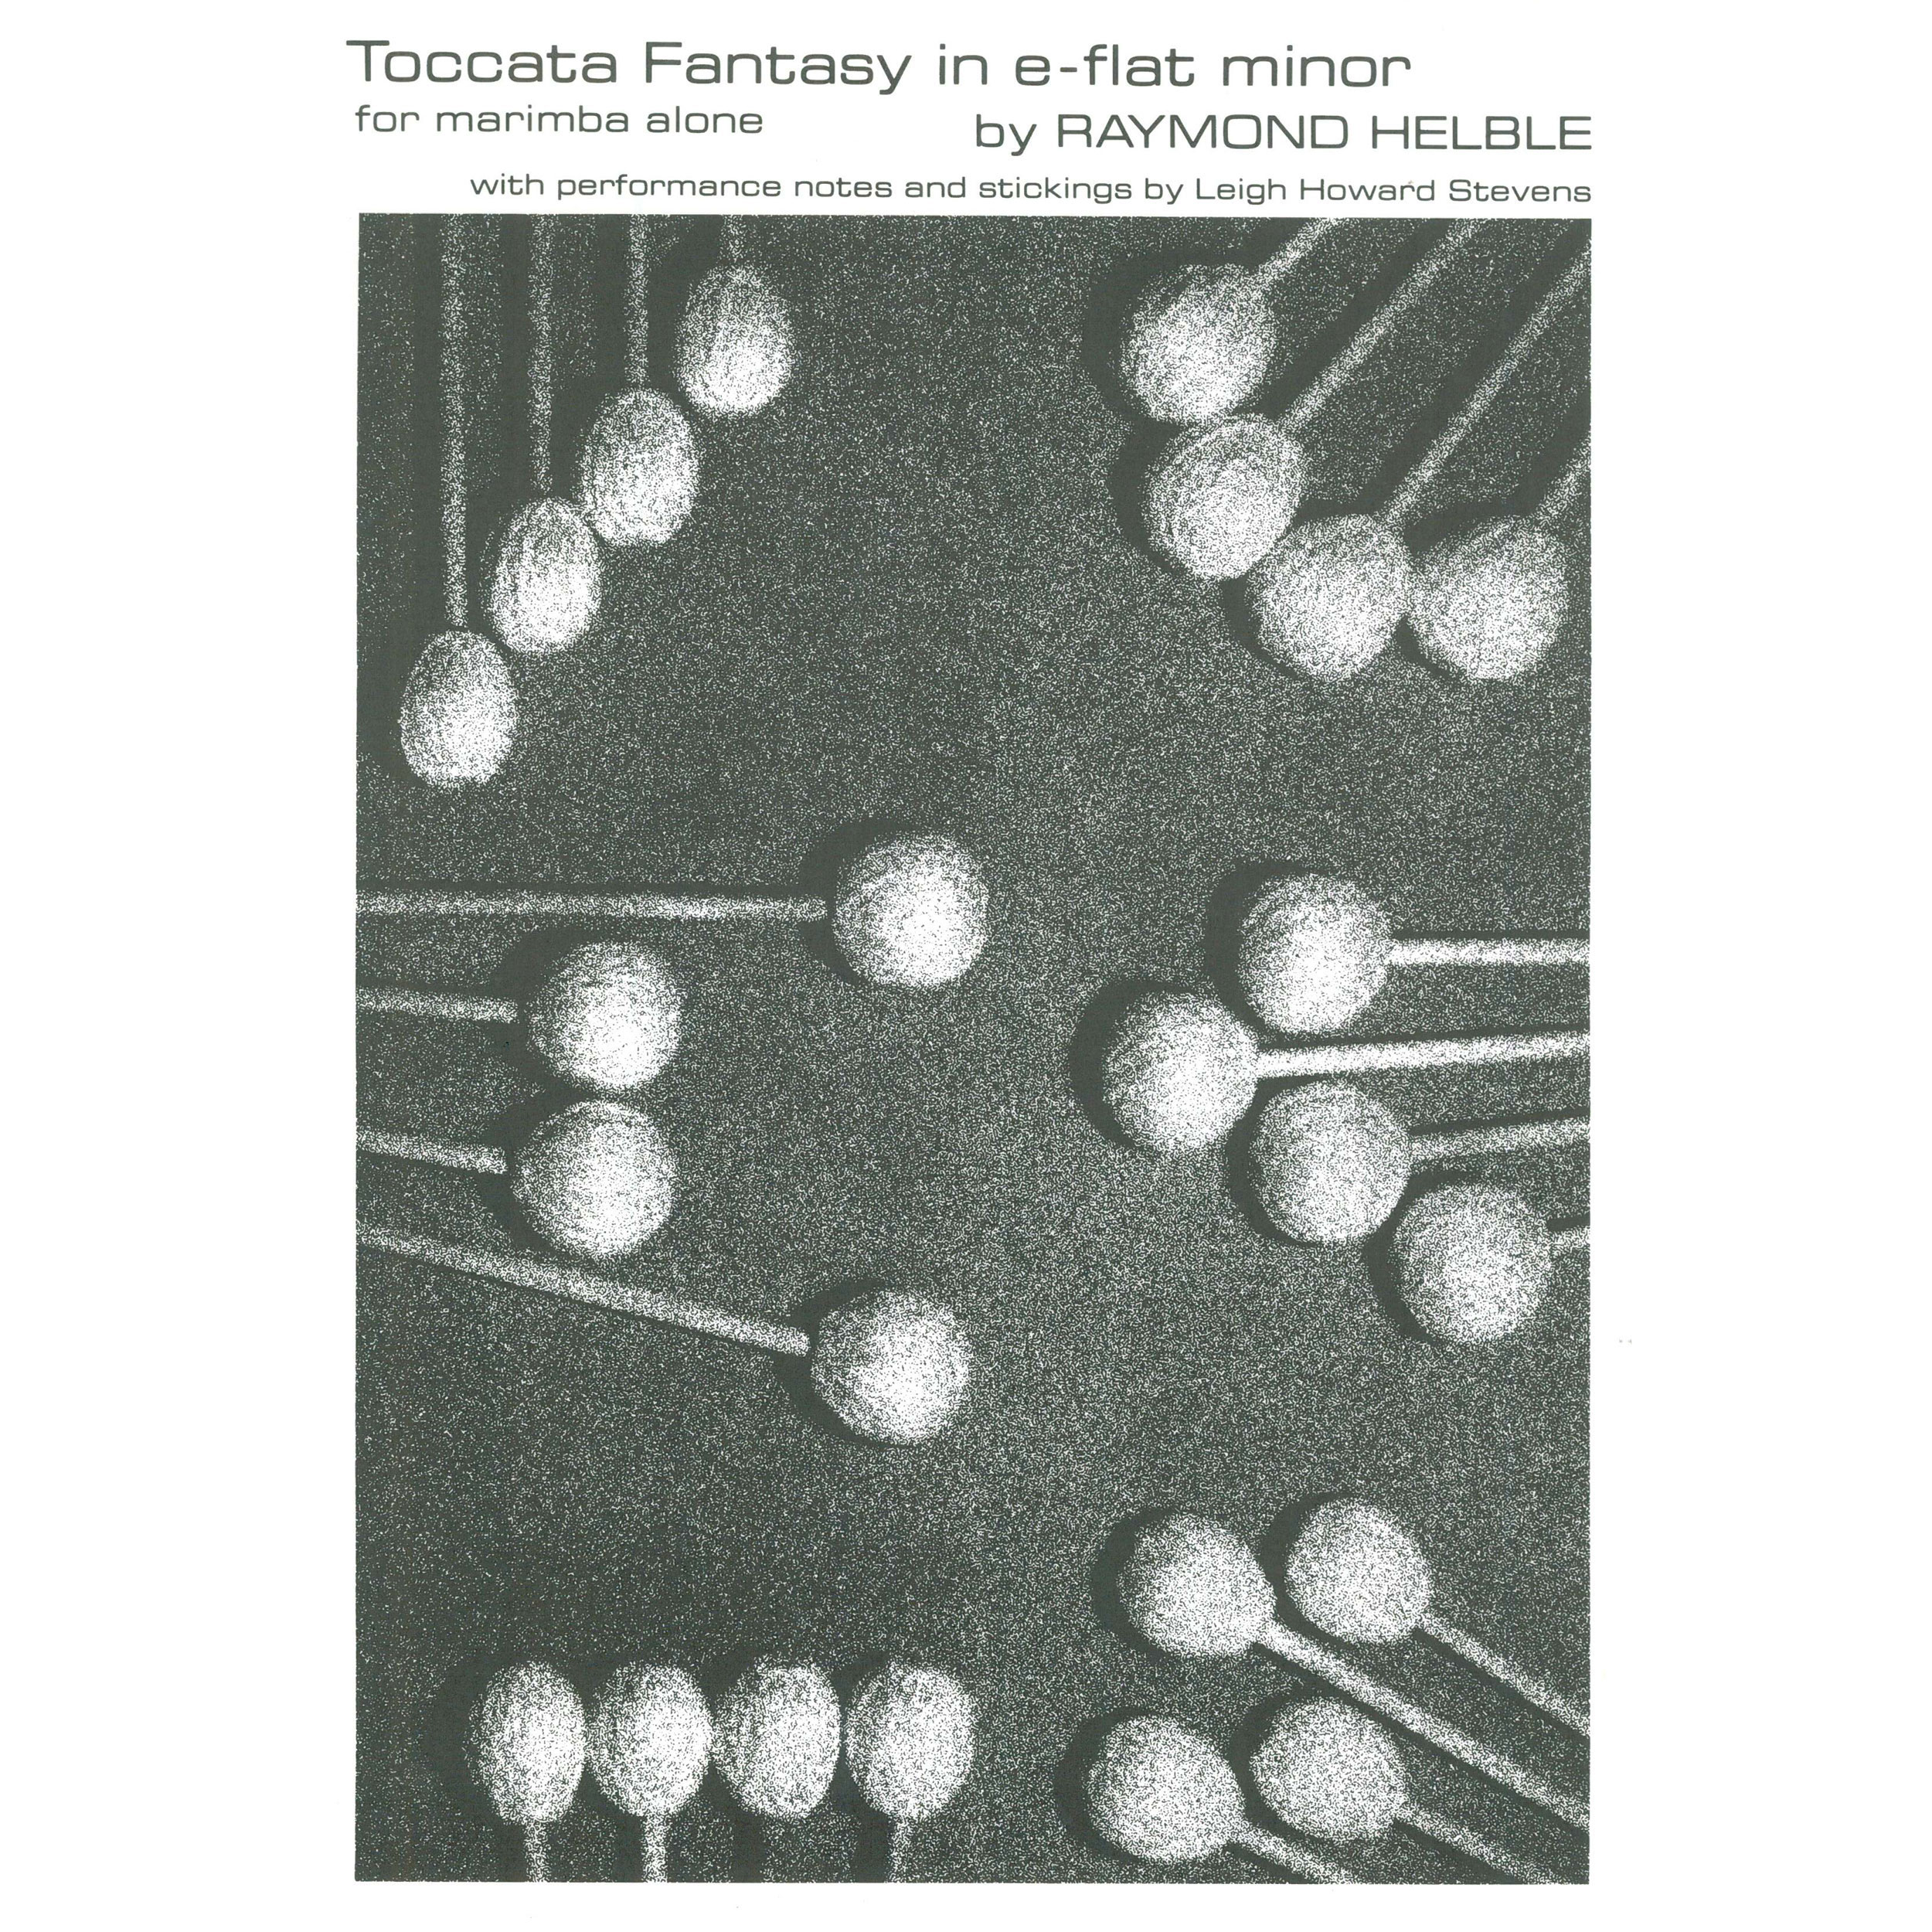 Toccata Fantasy in Eb Minor by Raymond Helble